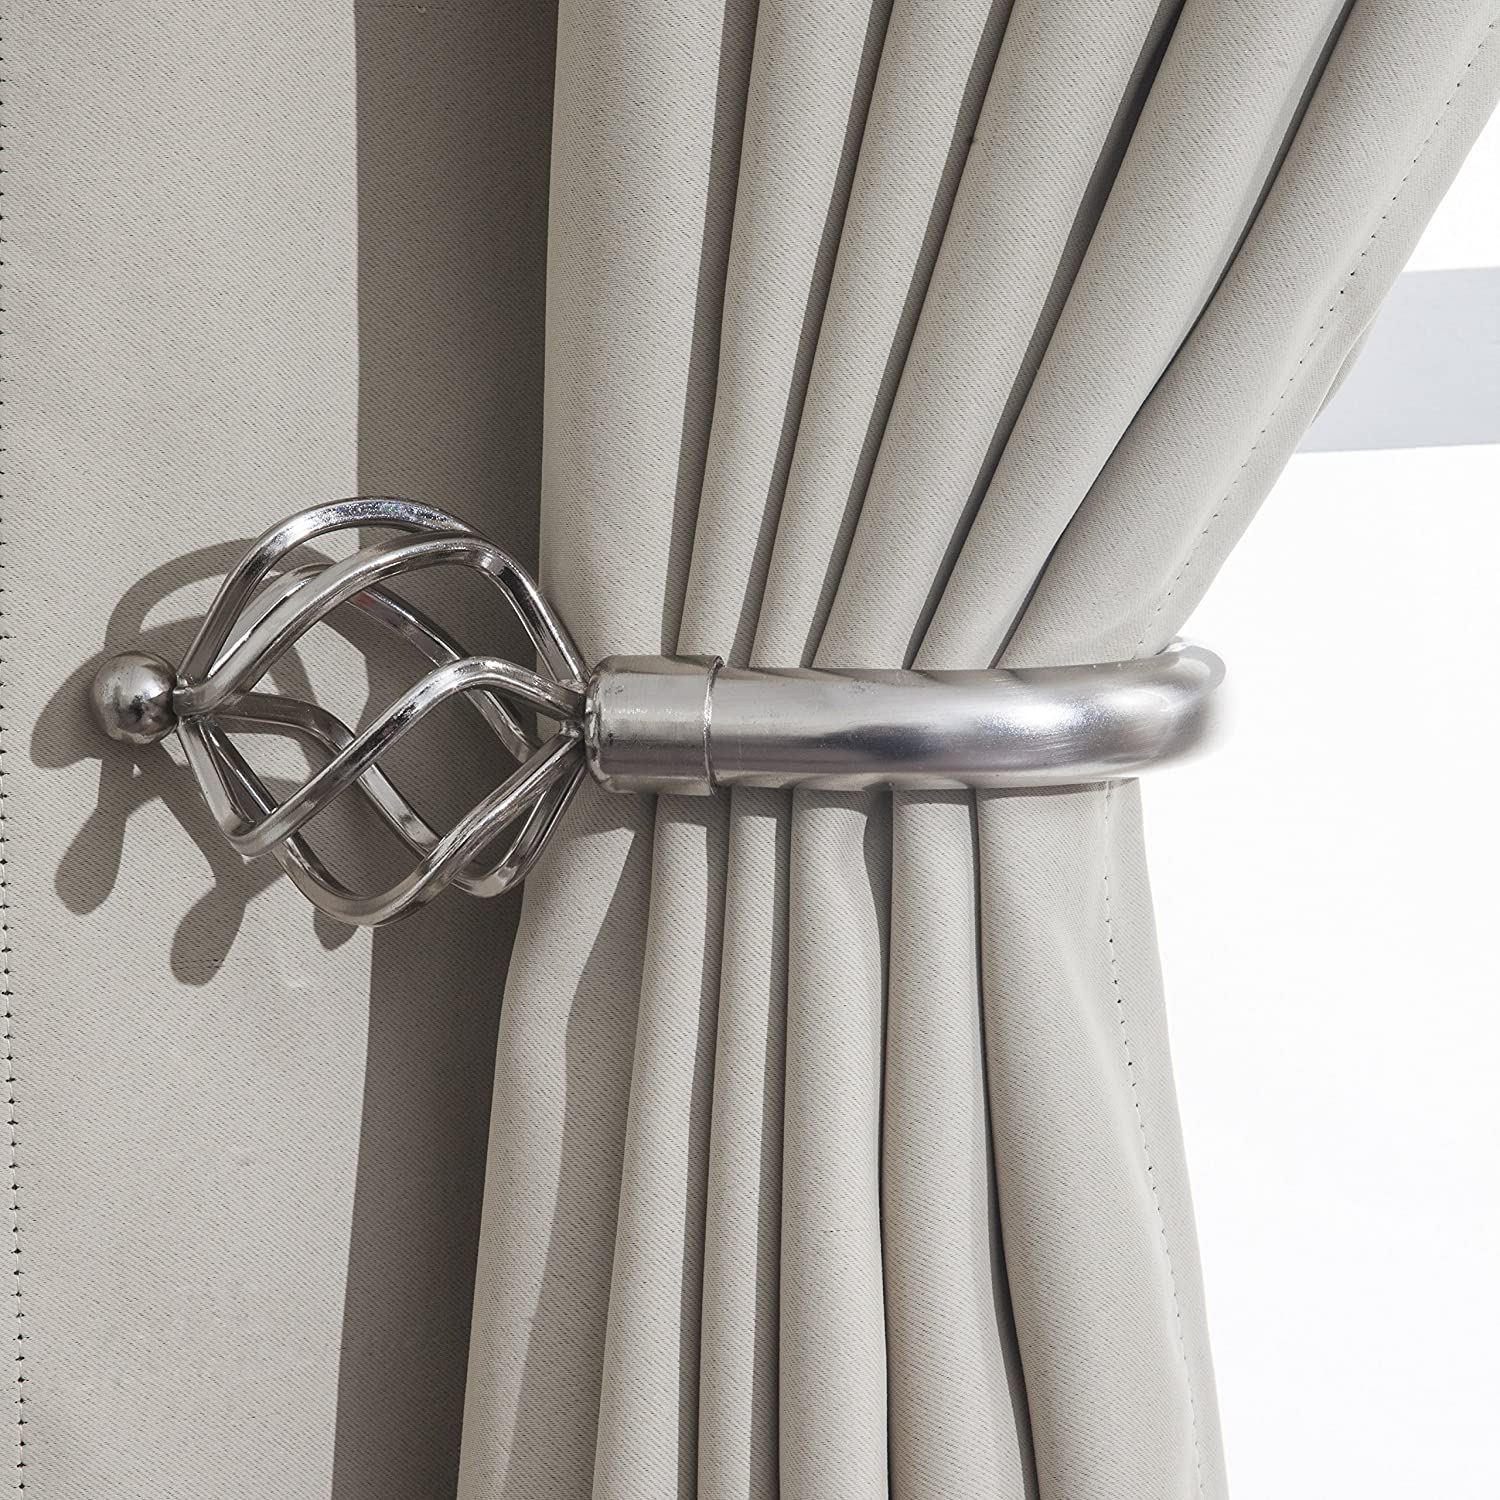 Home Harmony/® Bird Cage Finial Telescopic Extendable Curtain Pole set In Black Silver White and Matching Holdbacks Available Black, Pair Of Holdbacks